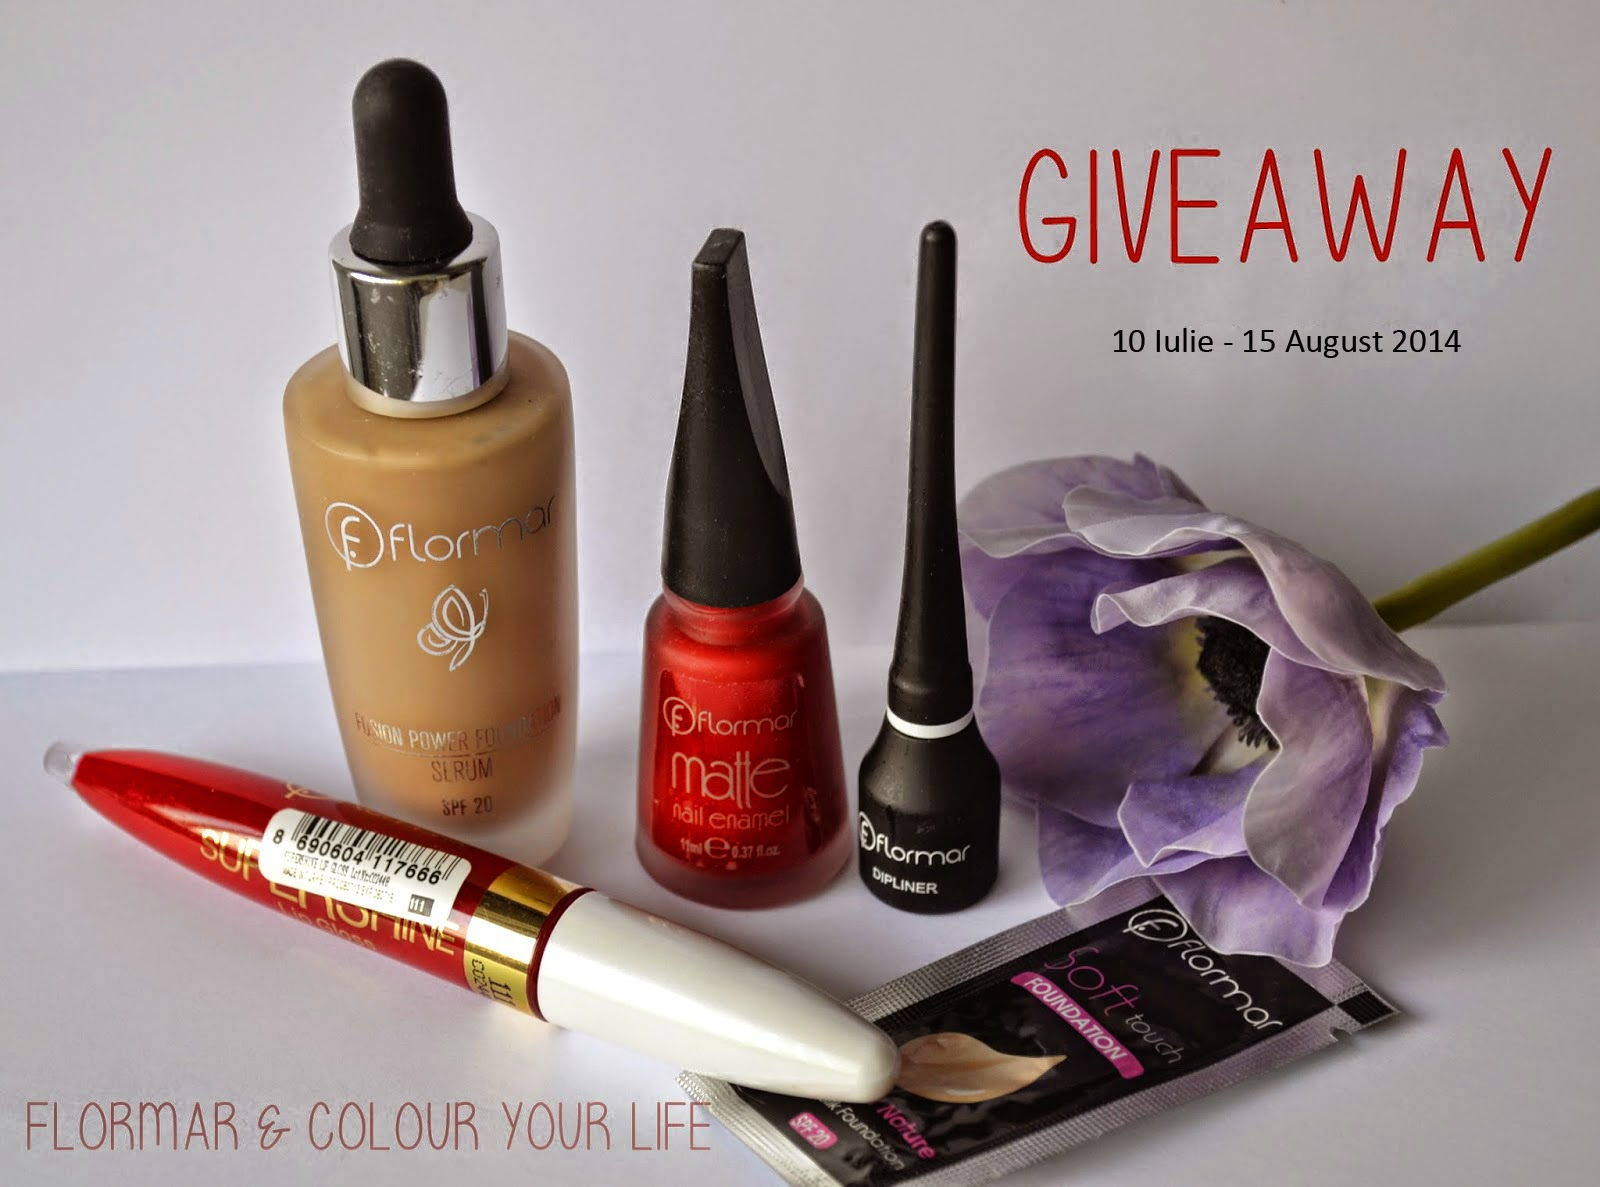 Concurs Flormar si Colour Your Life